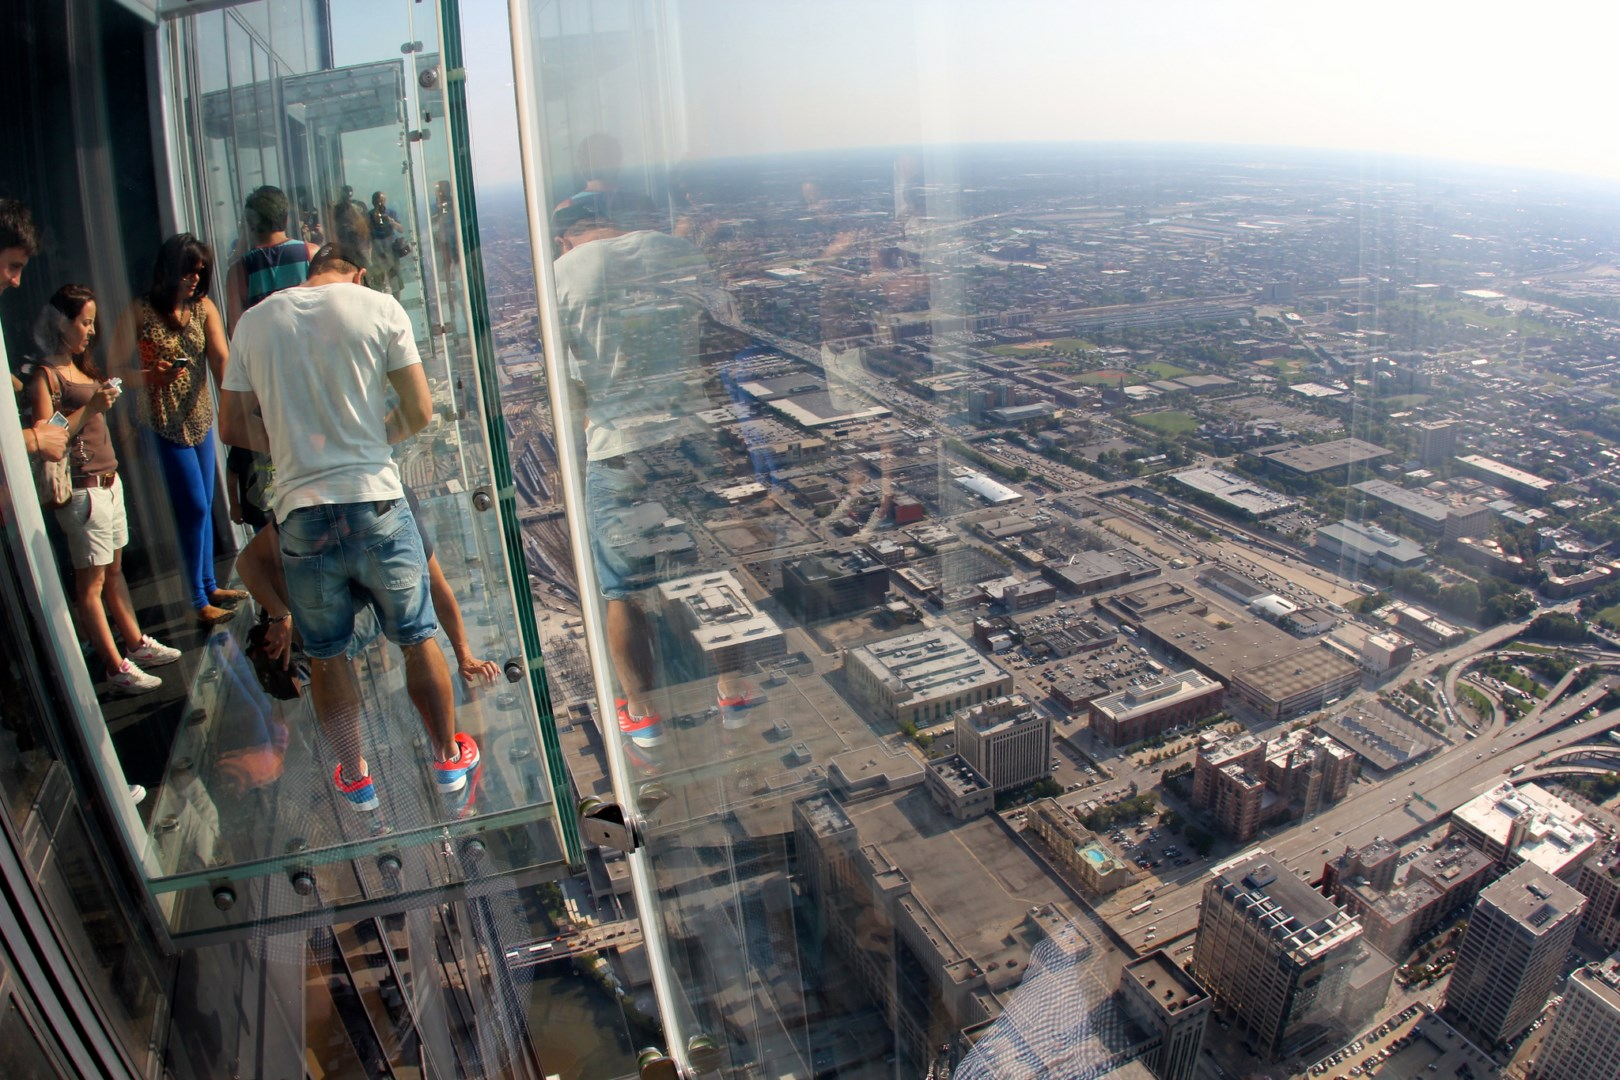 Skydecks at the top of the Willis (Sears) Tower, Chicago 3